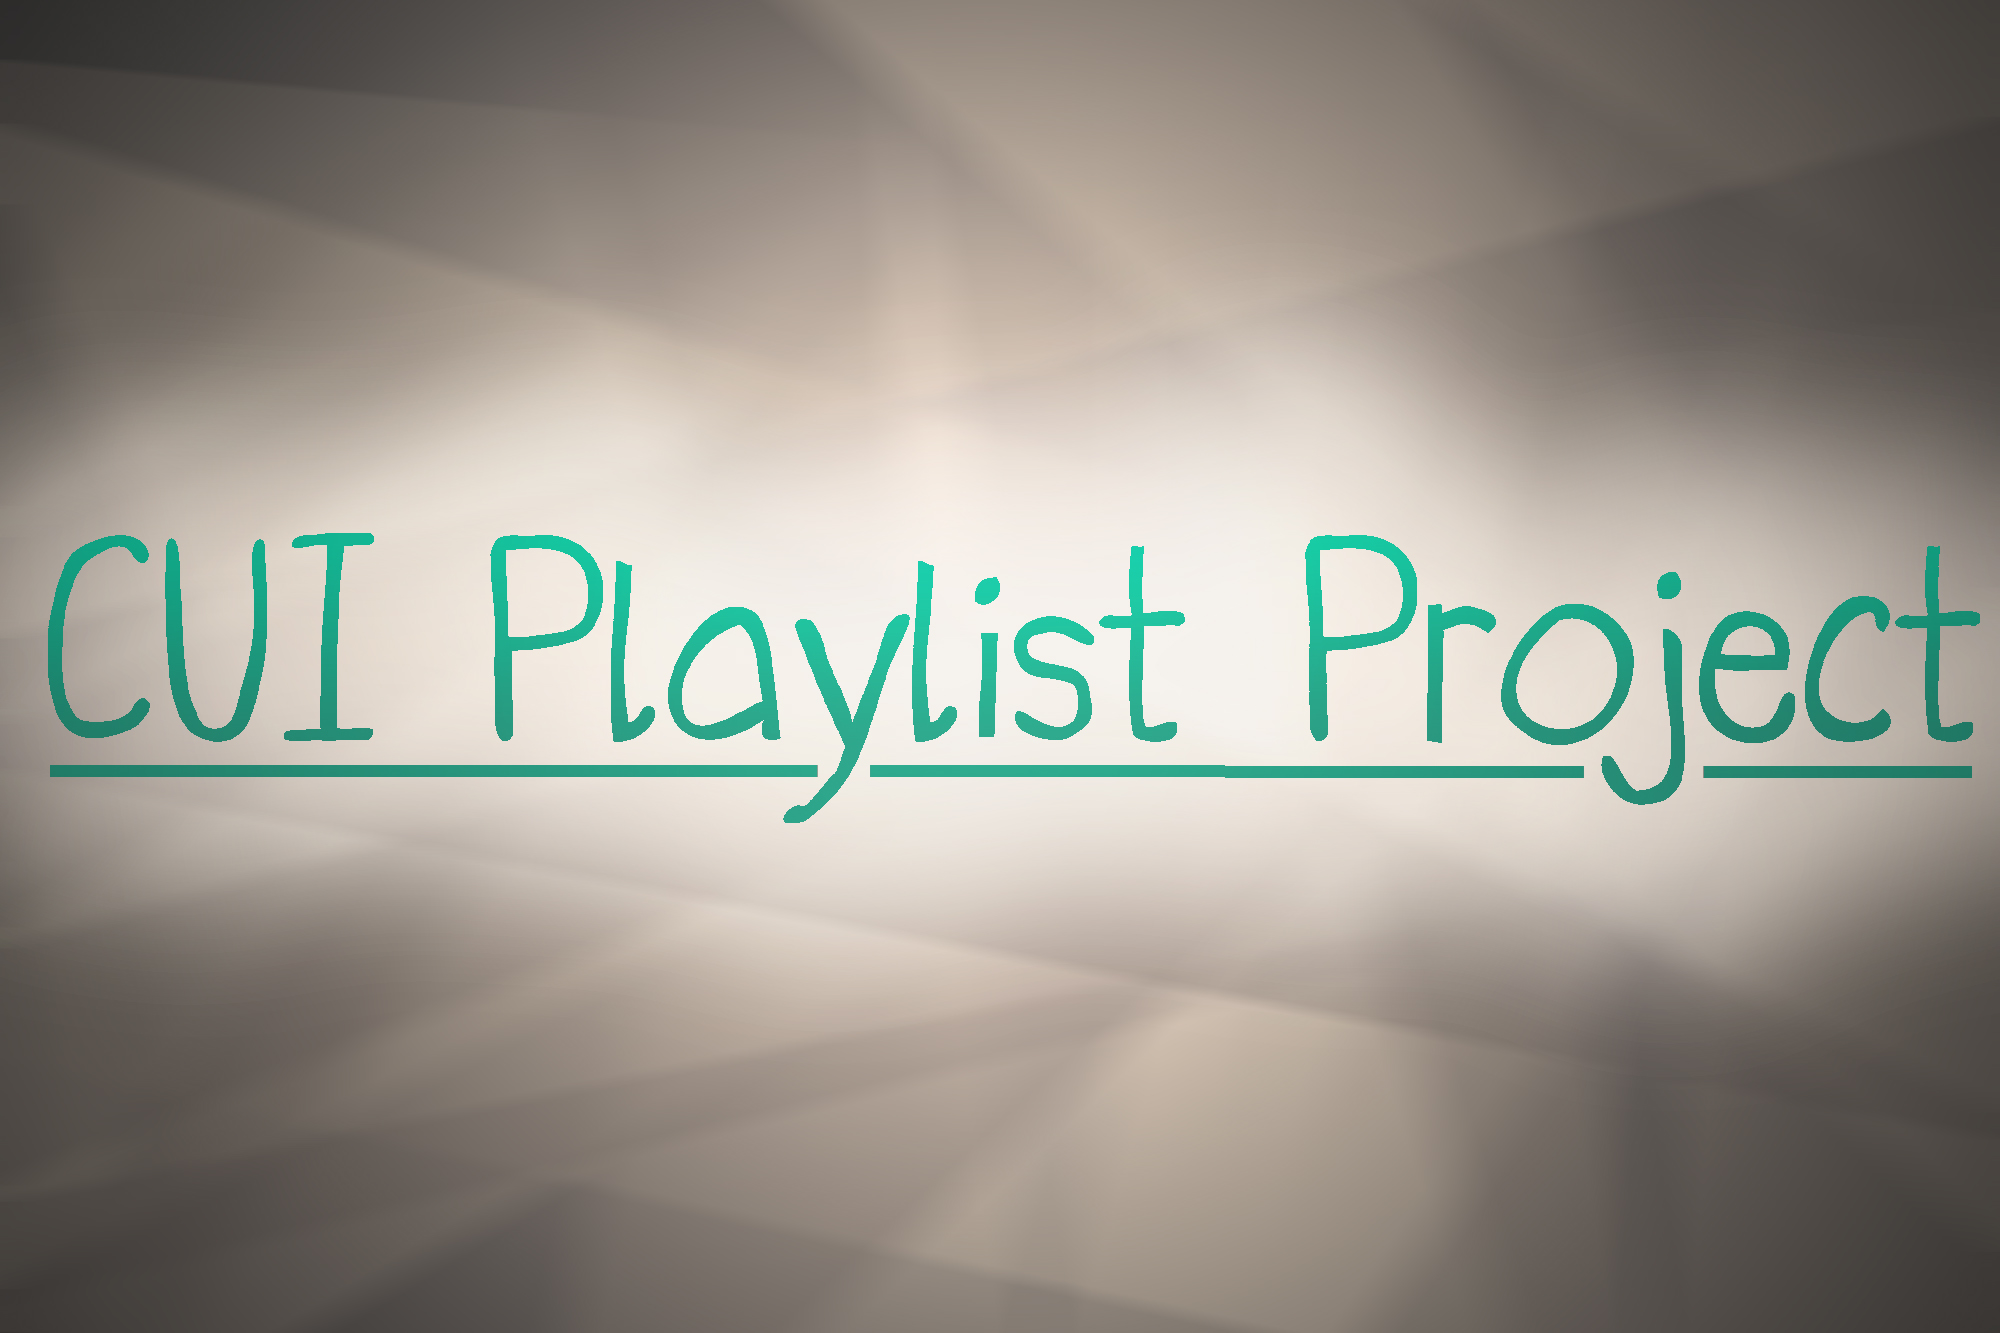 CUI Playlist Project